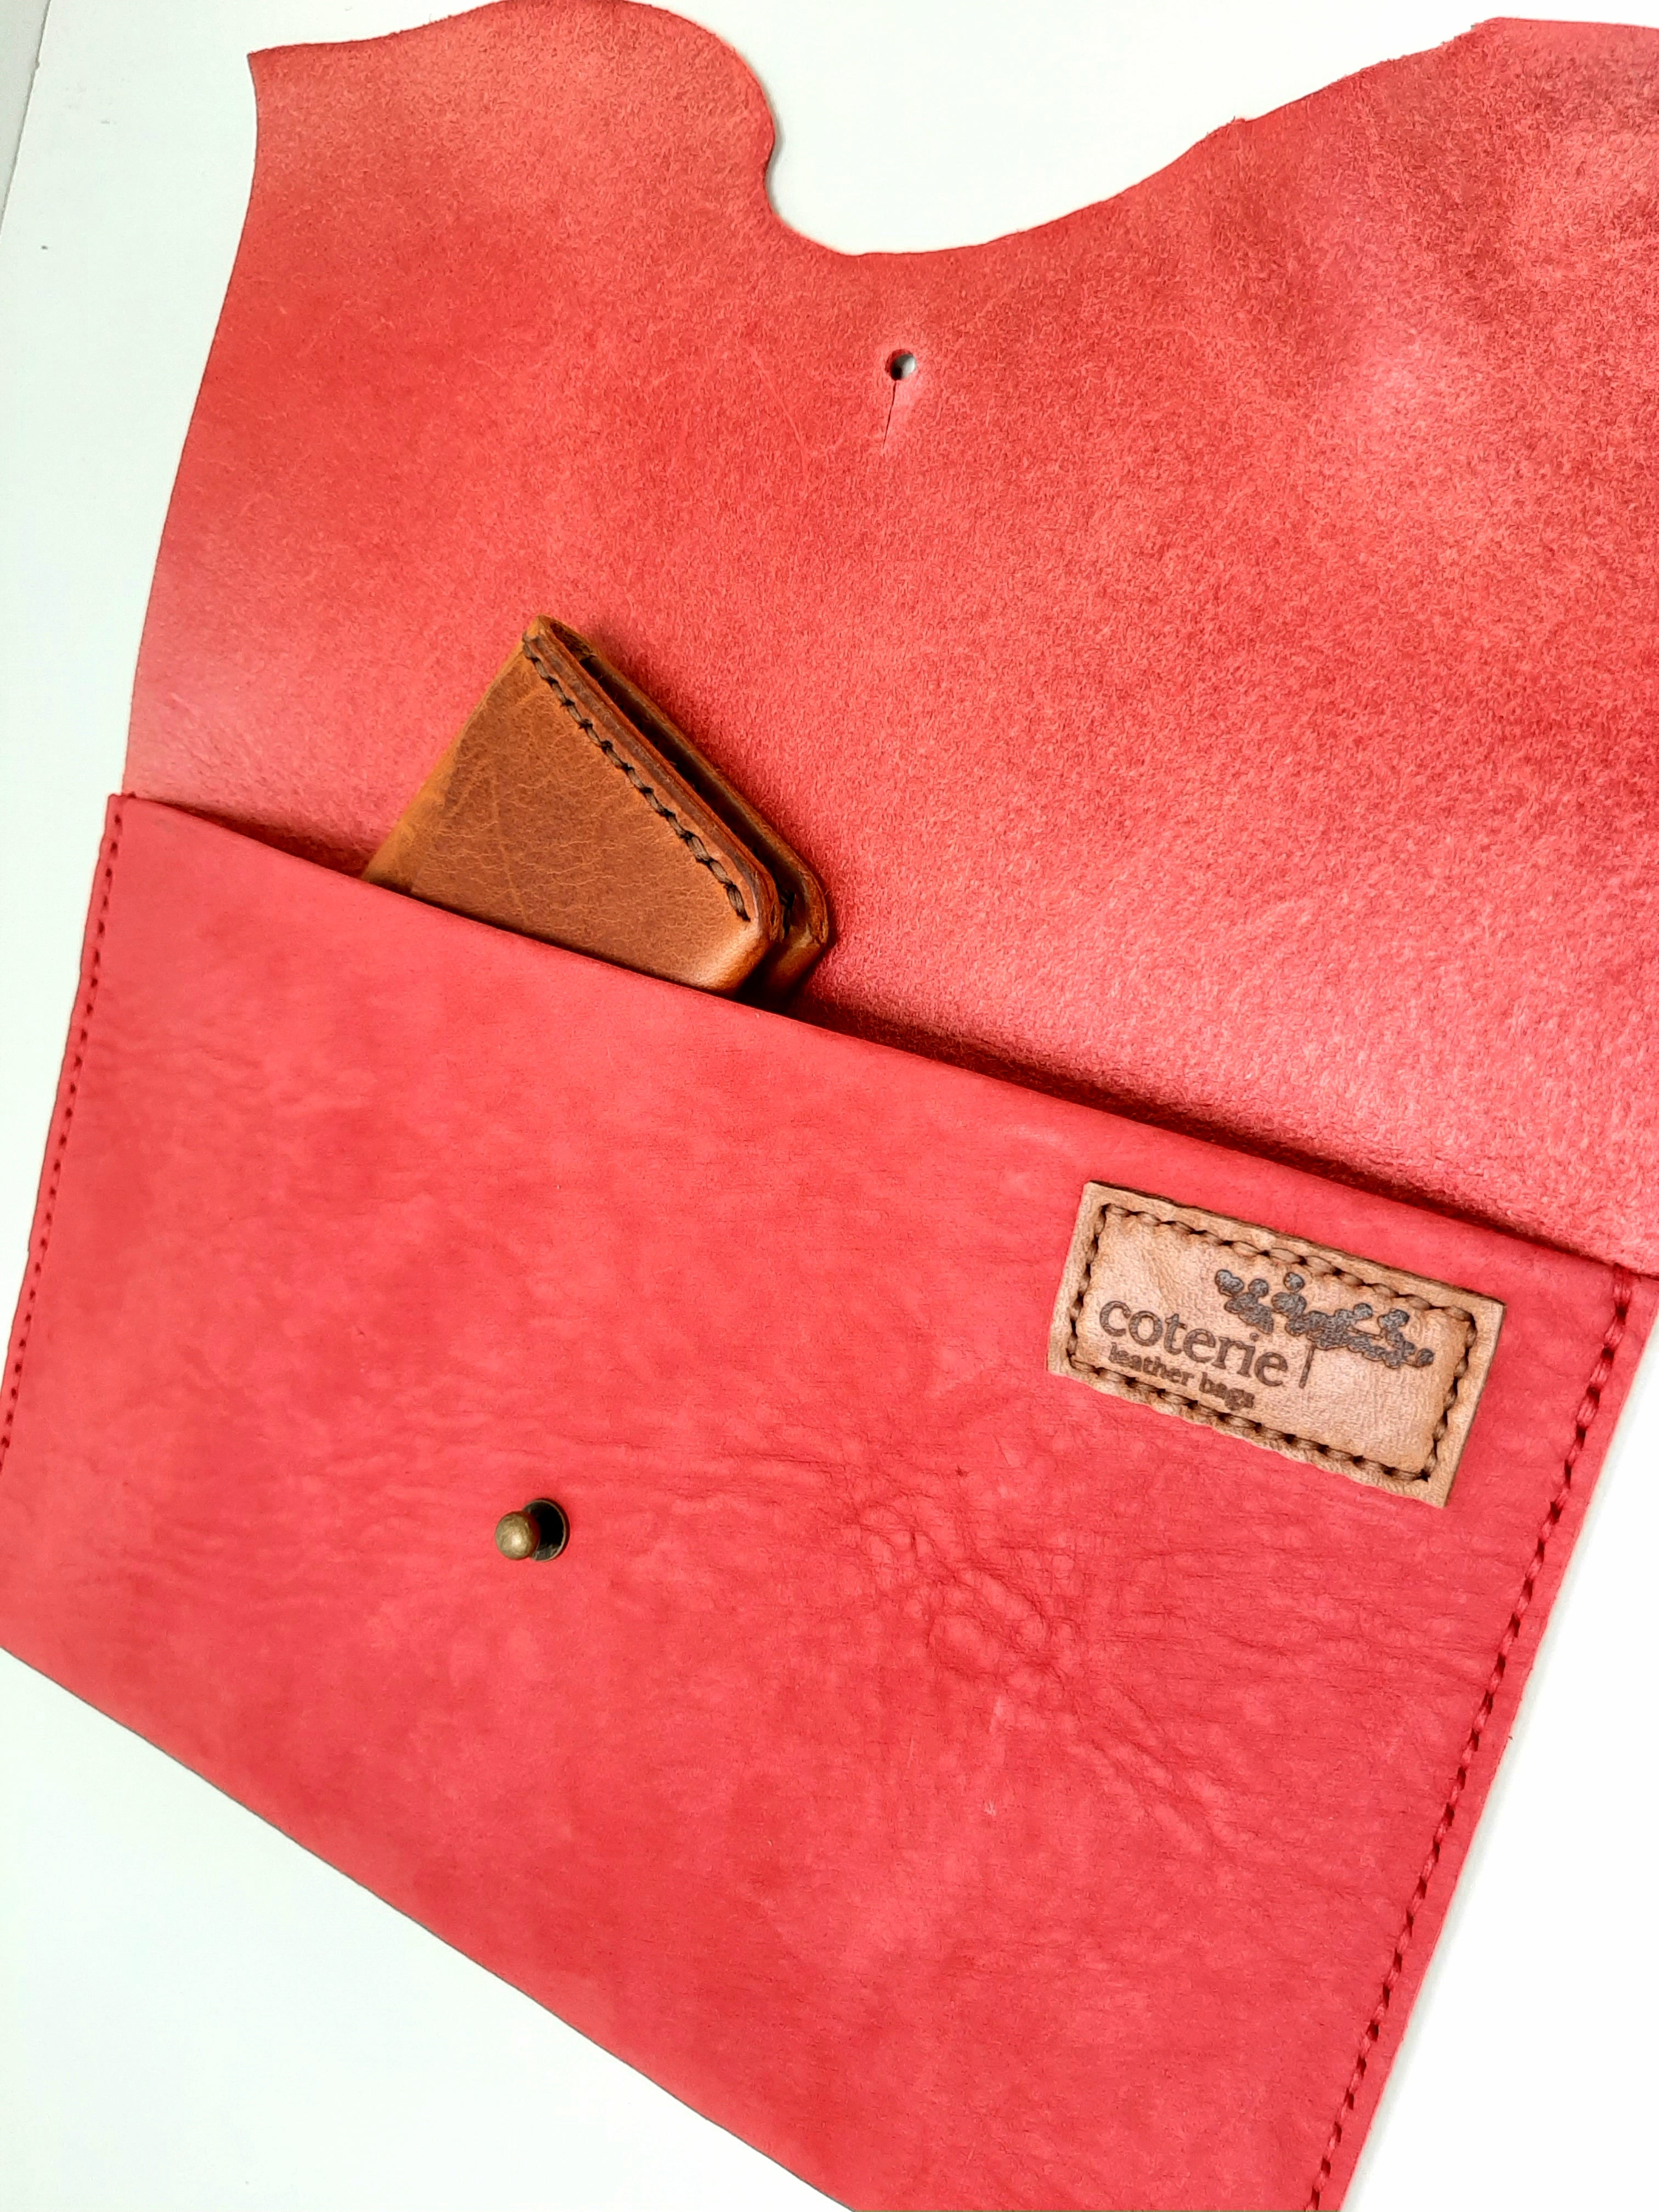 Raw Edge Clutch Purse - Red - Coterie Leather Bags